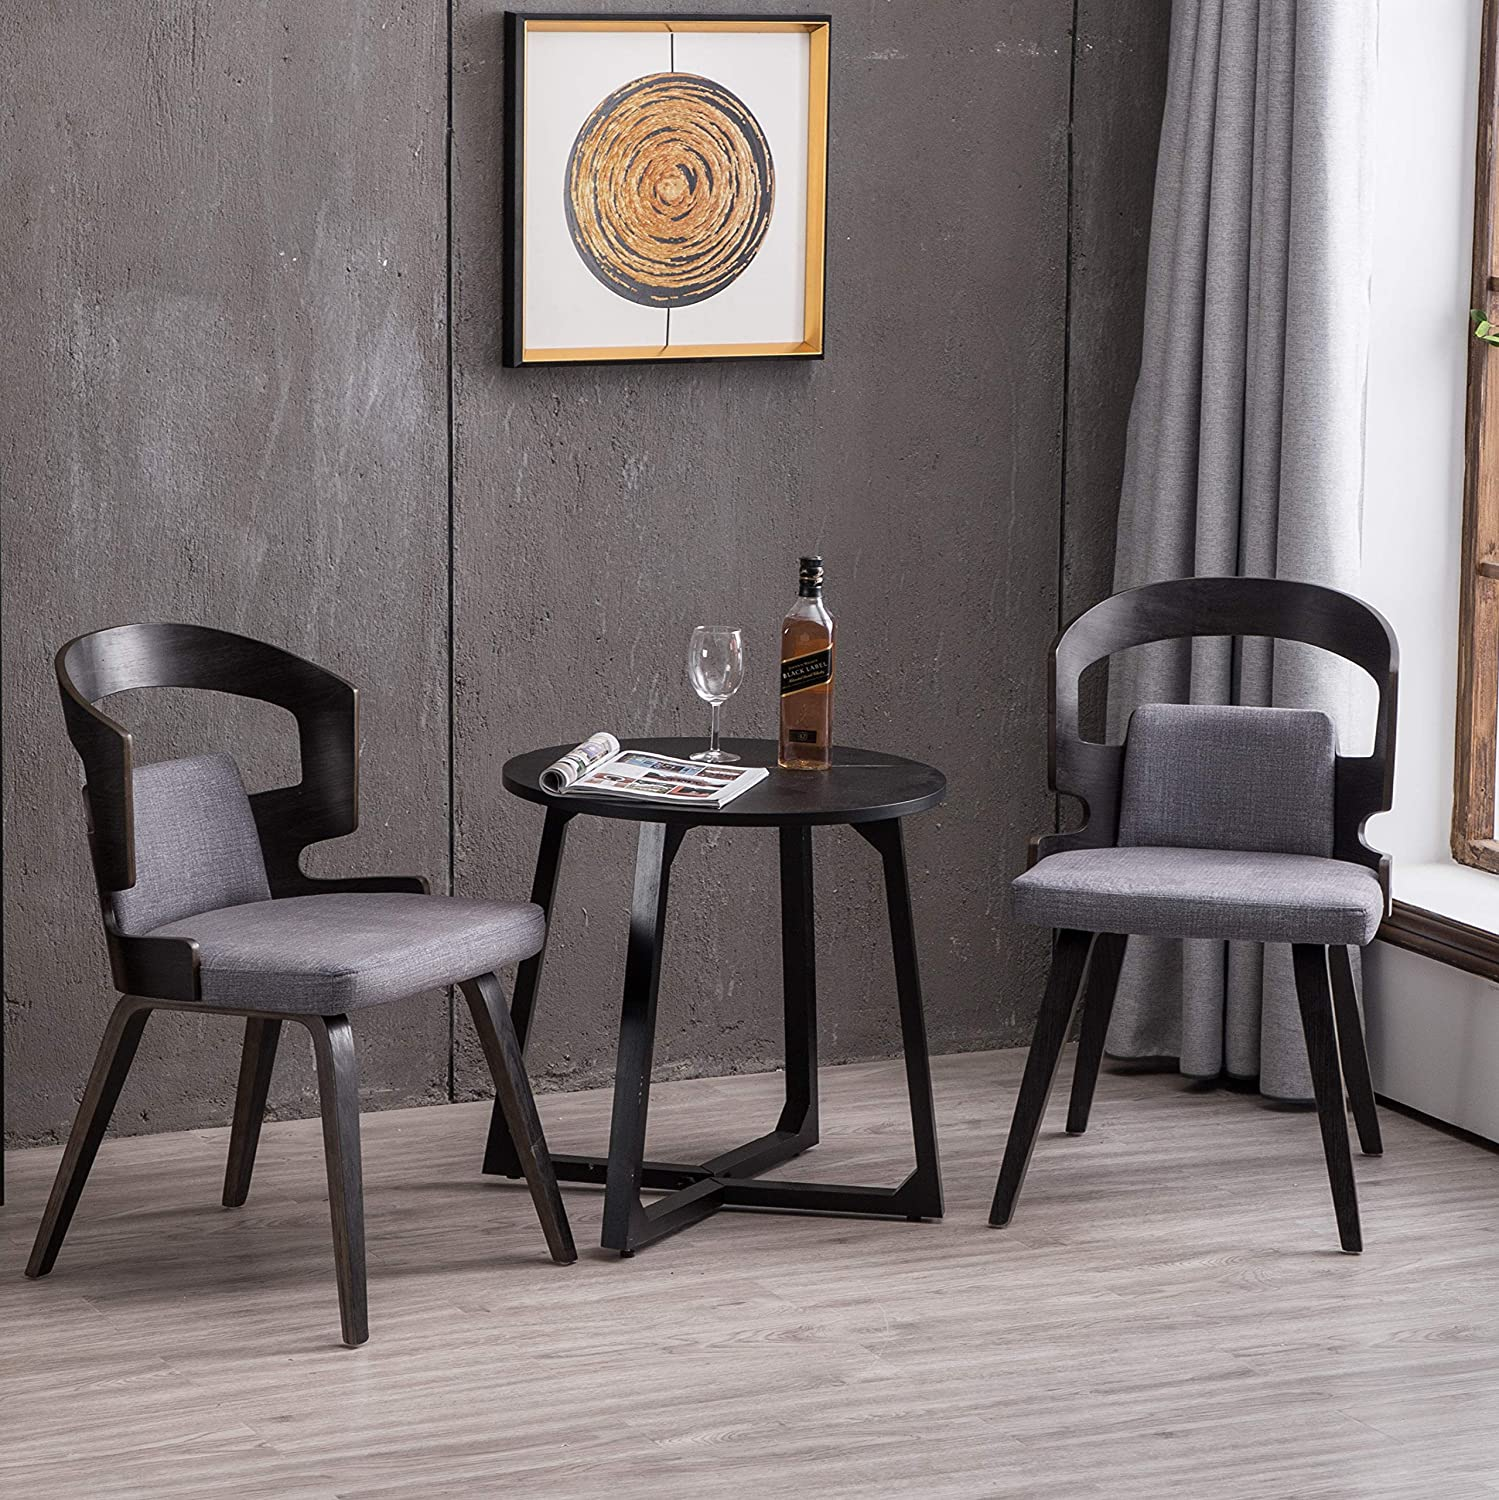 YEEFY Living Room Chairs Fabric Dining Chair Gray Dining Room Chairs, Set  of 2(Gray